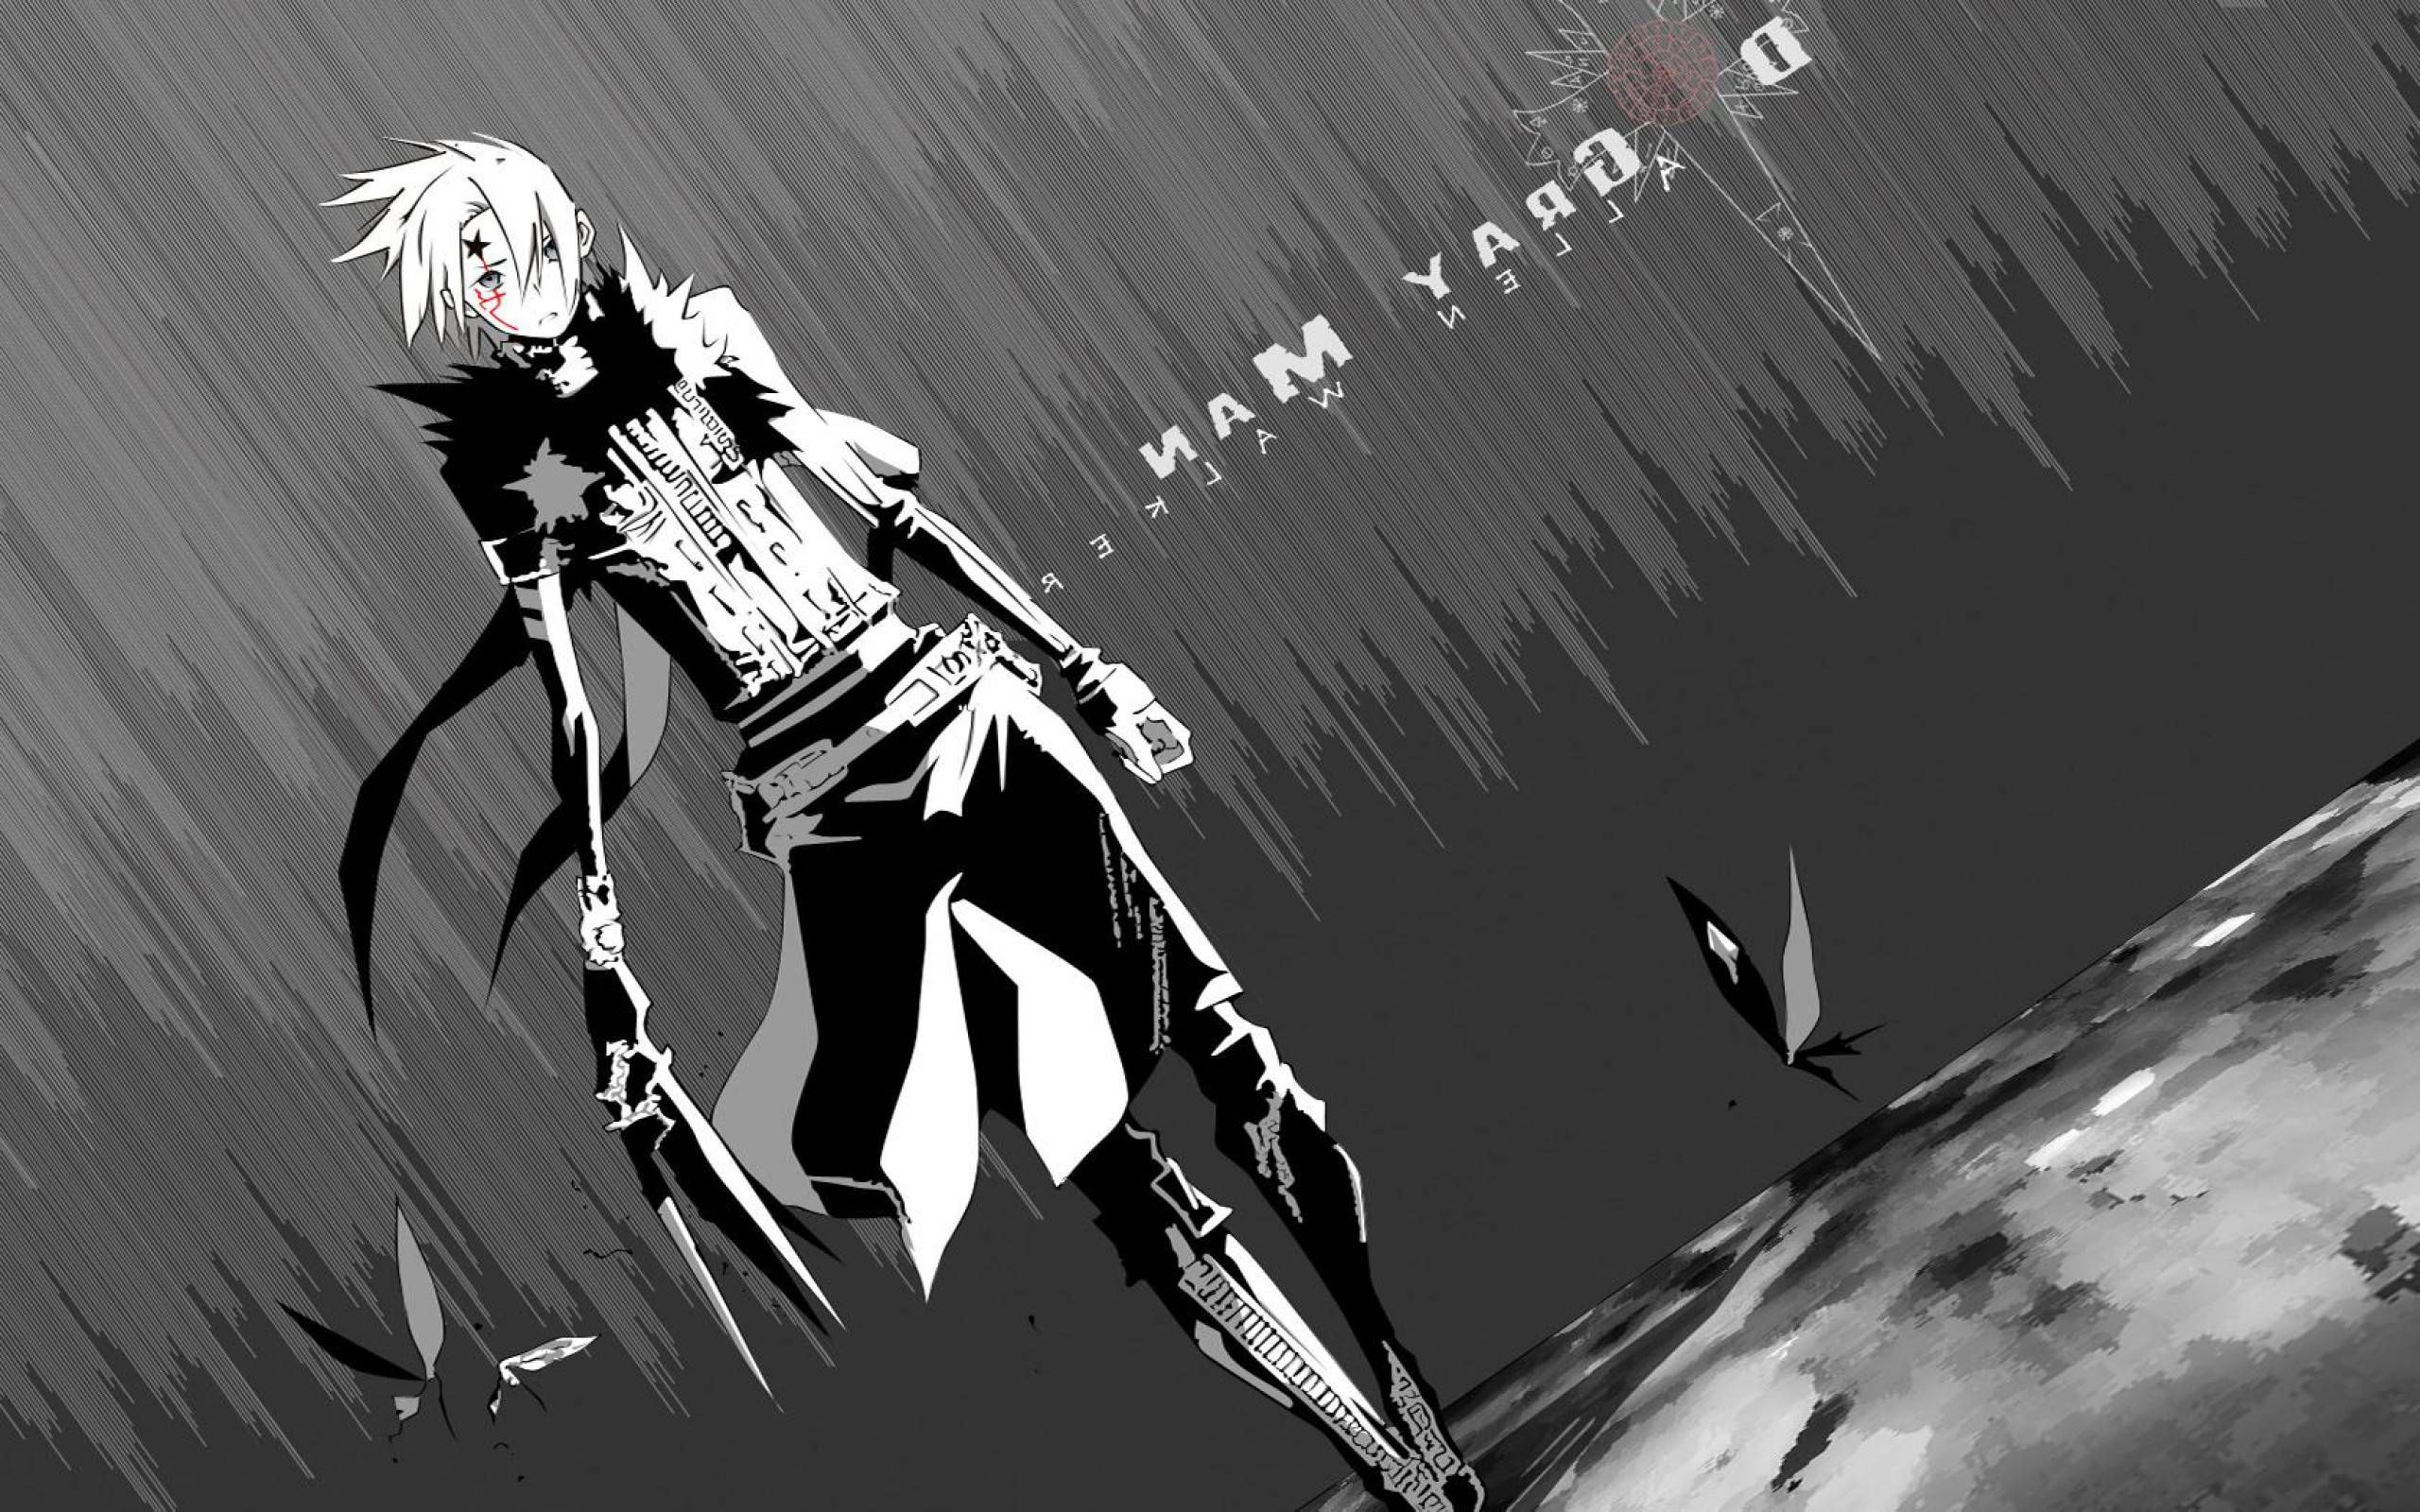 D gray man wallpaper hd 22 background wallpaper - D gray man images ...